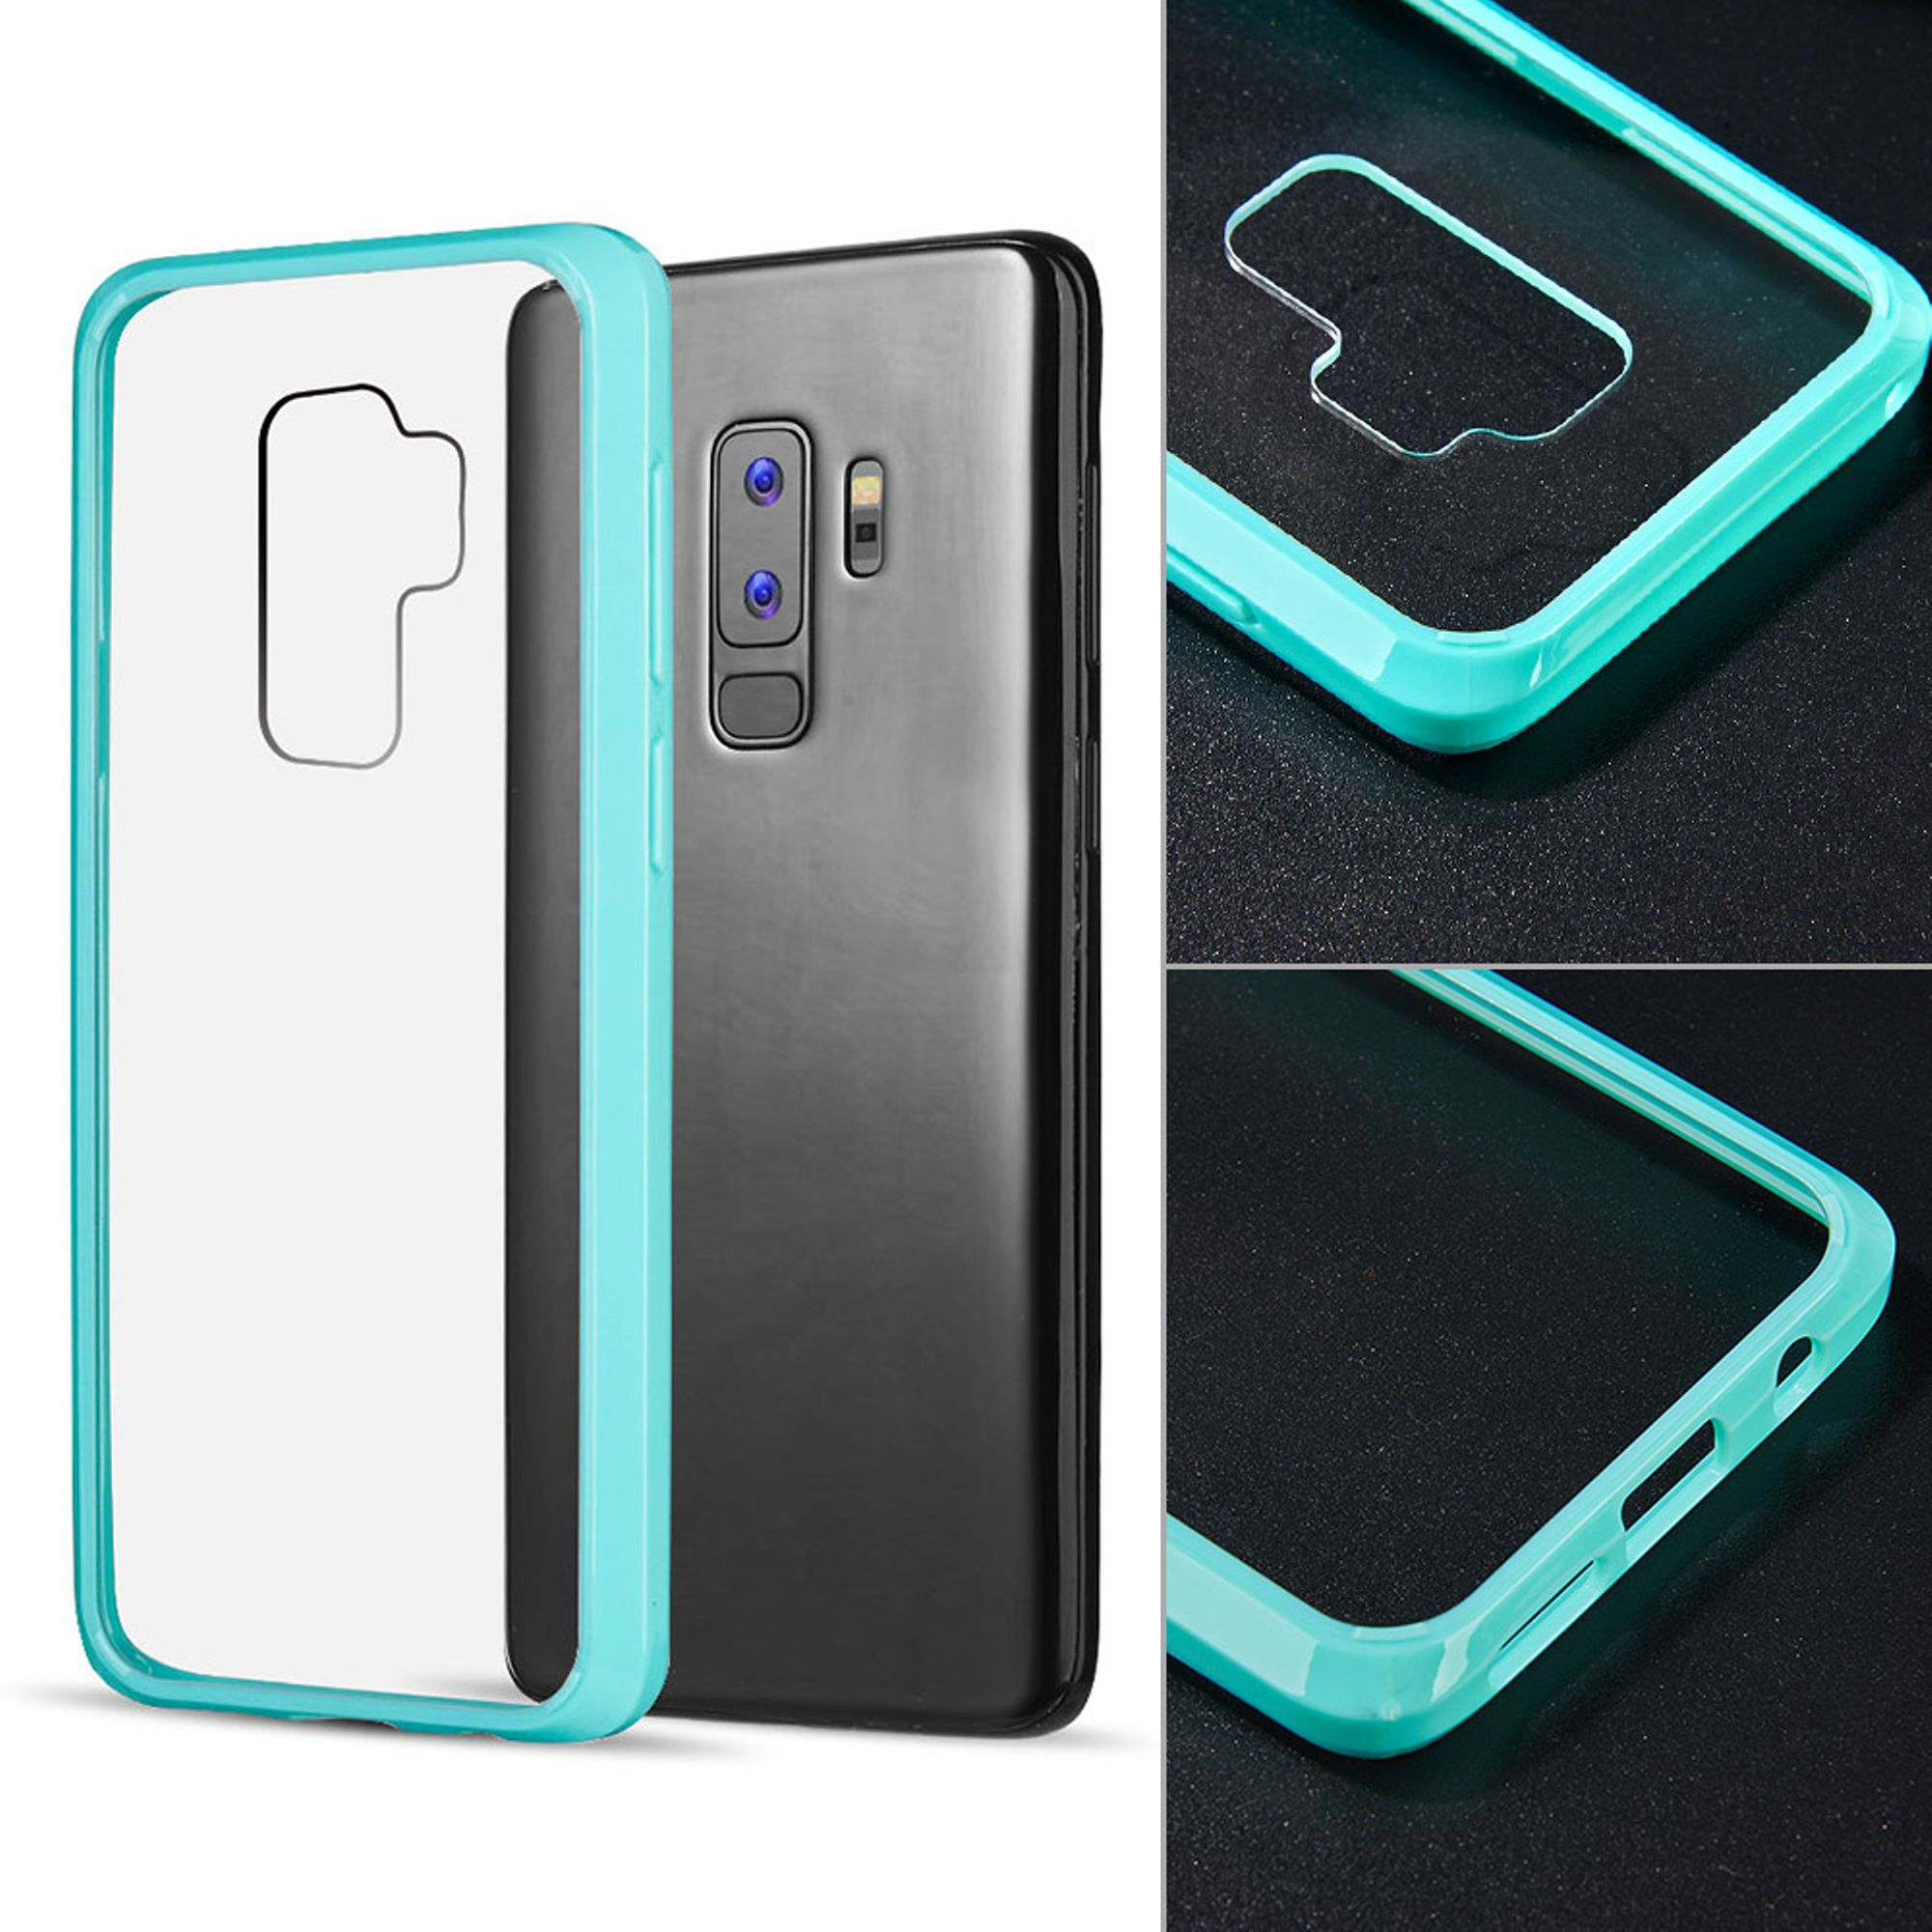 Samsung Galaxy S9 Plus Case, by Insten Fusion Candy Acrylic Transparent Case Phone Cover For Samsung Galaxy S9 Plus